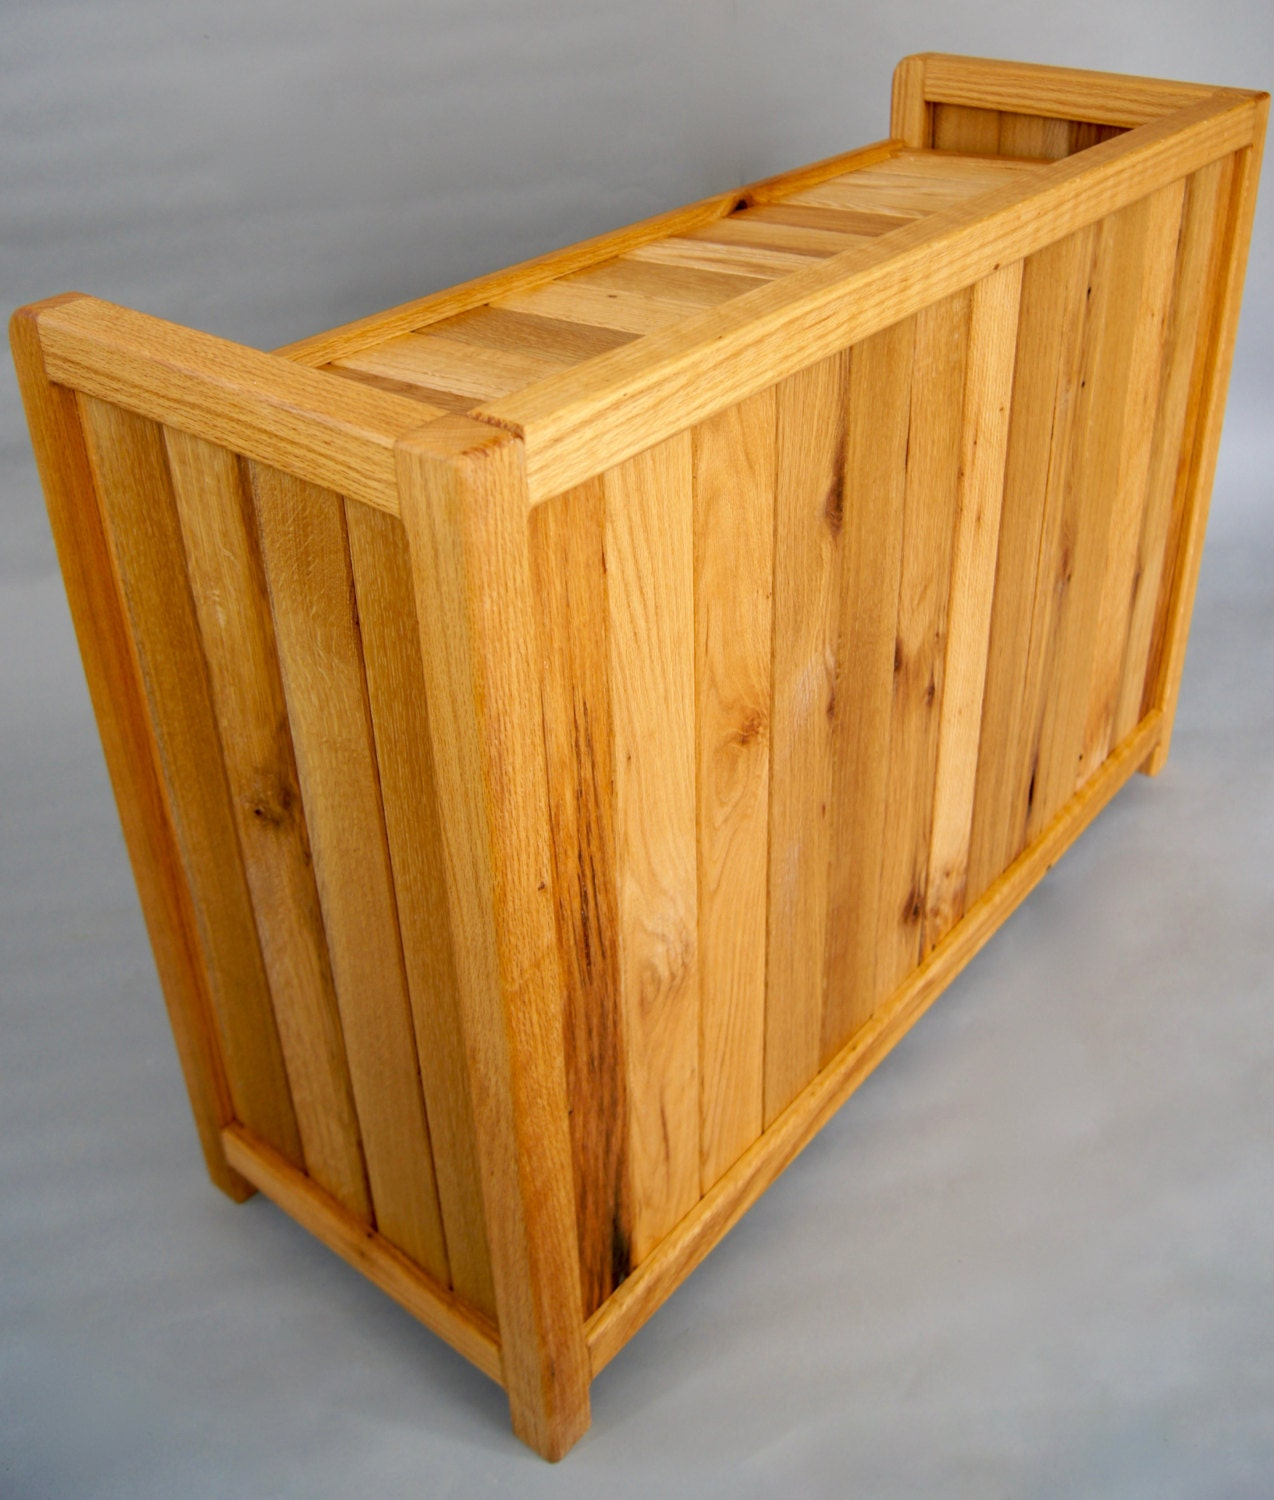 Solid Wood Shoe Rack made with Reclaimed